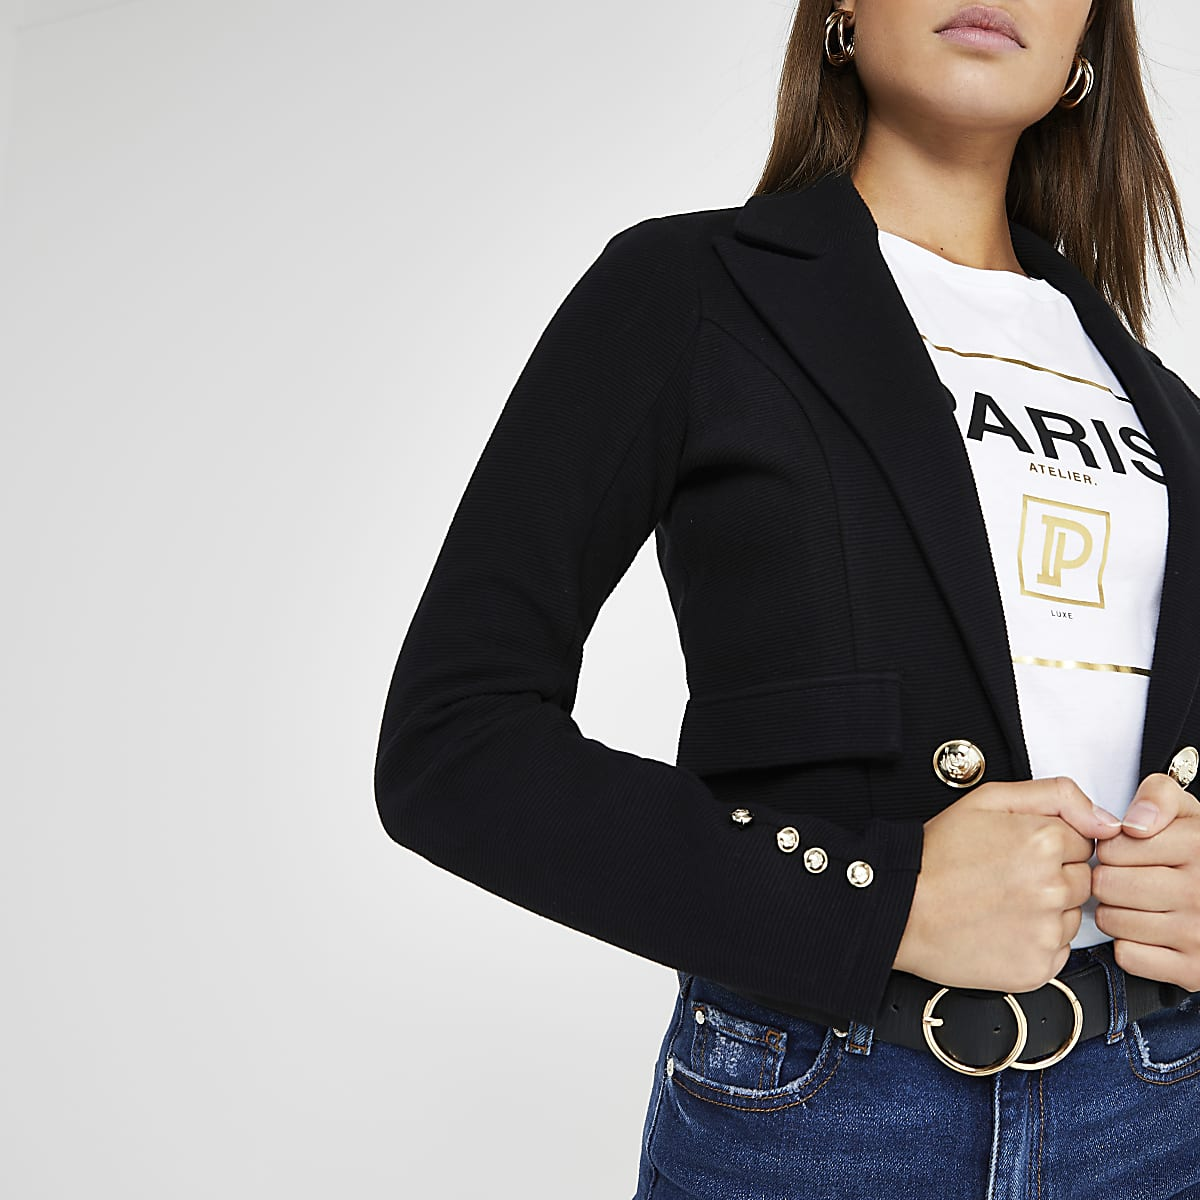 Black crop jersey jacket